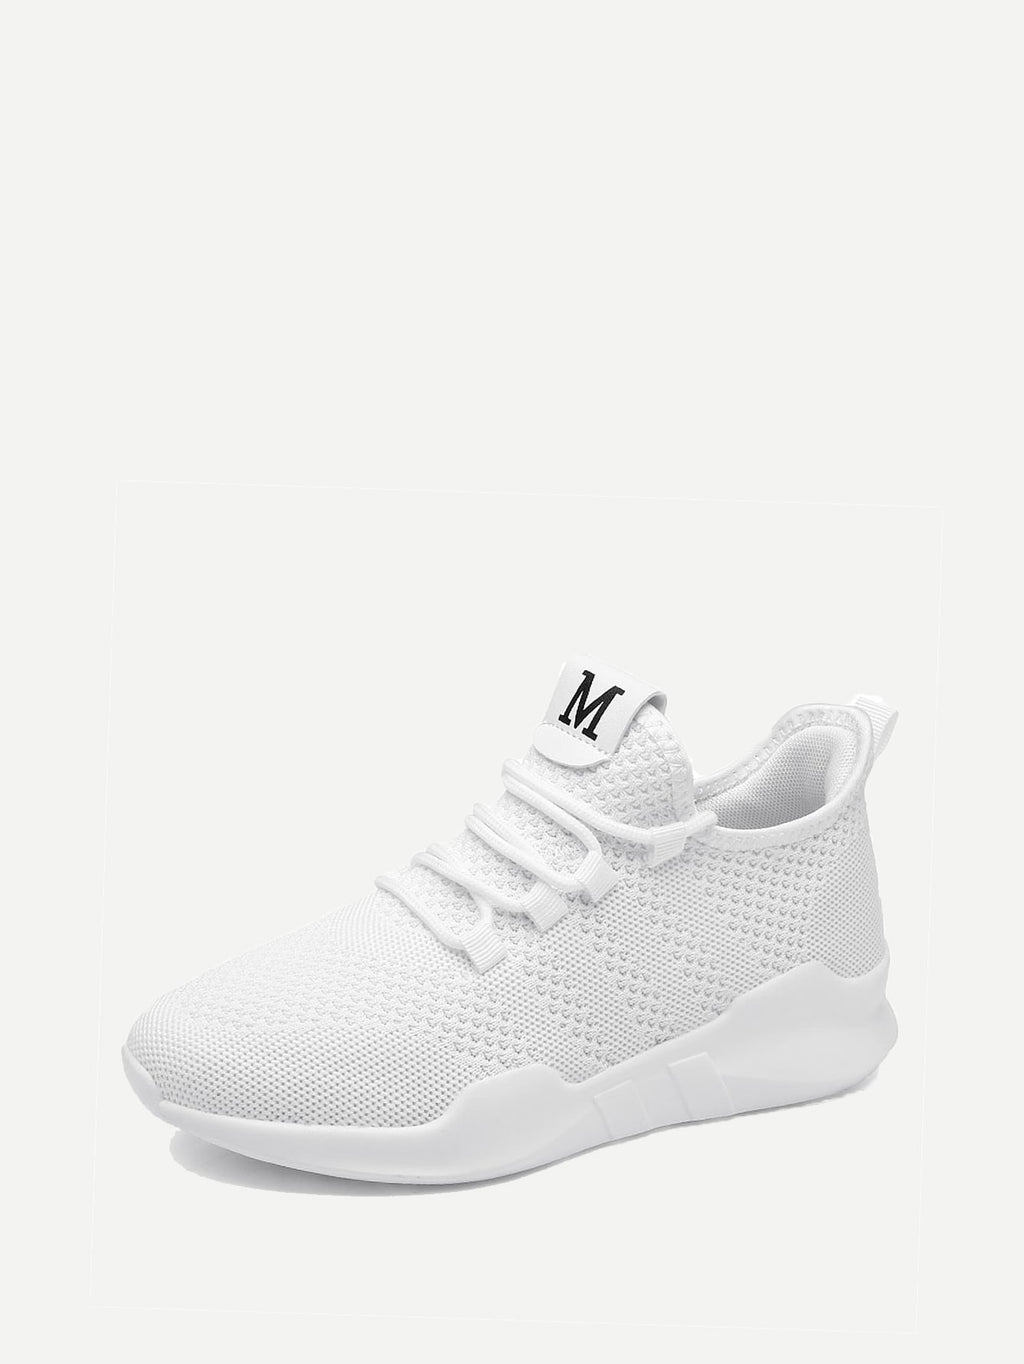 Womens Sneakers - Lace Up Fly Knit Sneakers